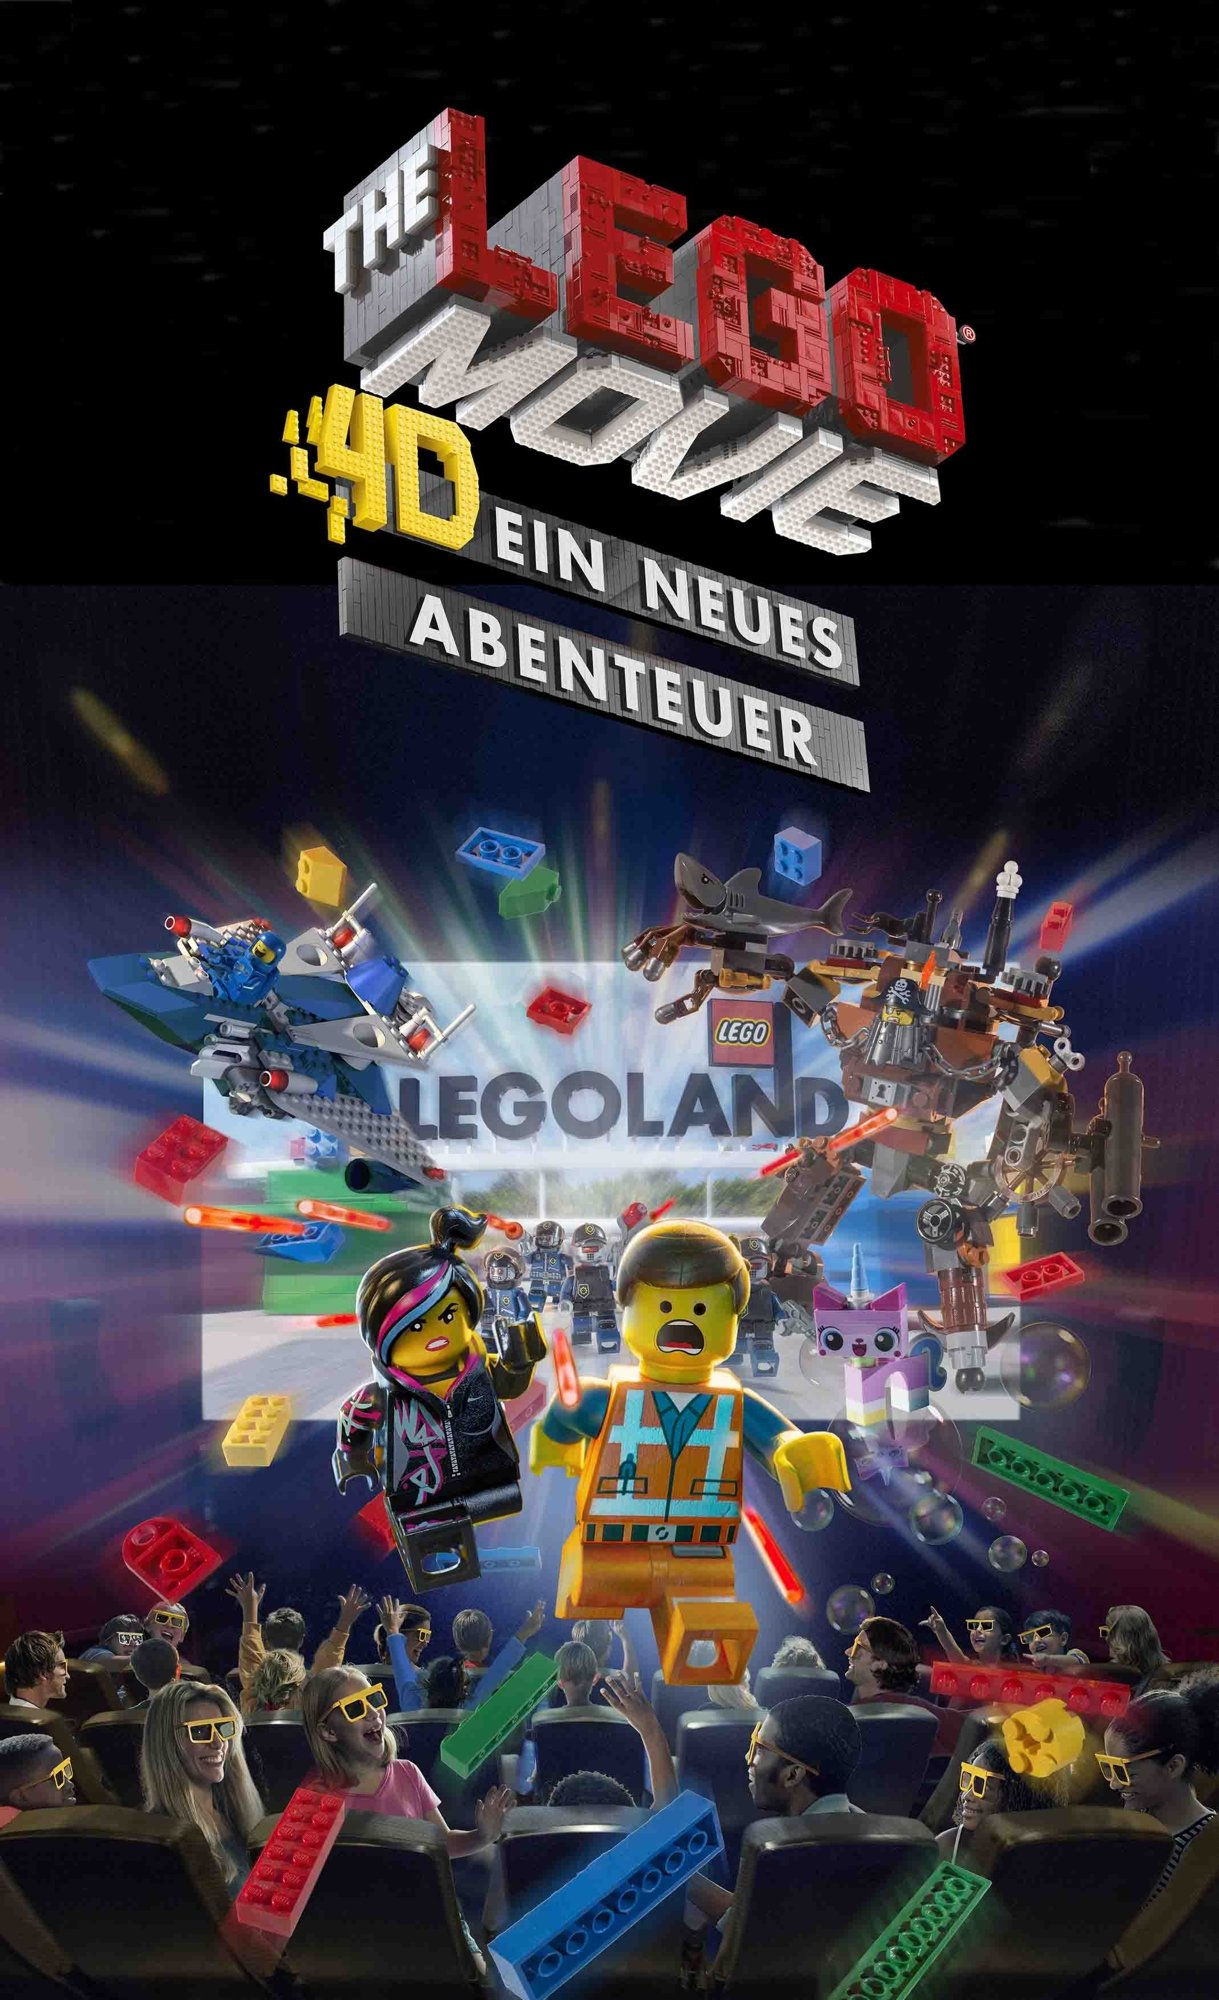 Foto: LEGOLAND Deutschland, The Lego Movie 4D